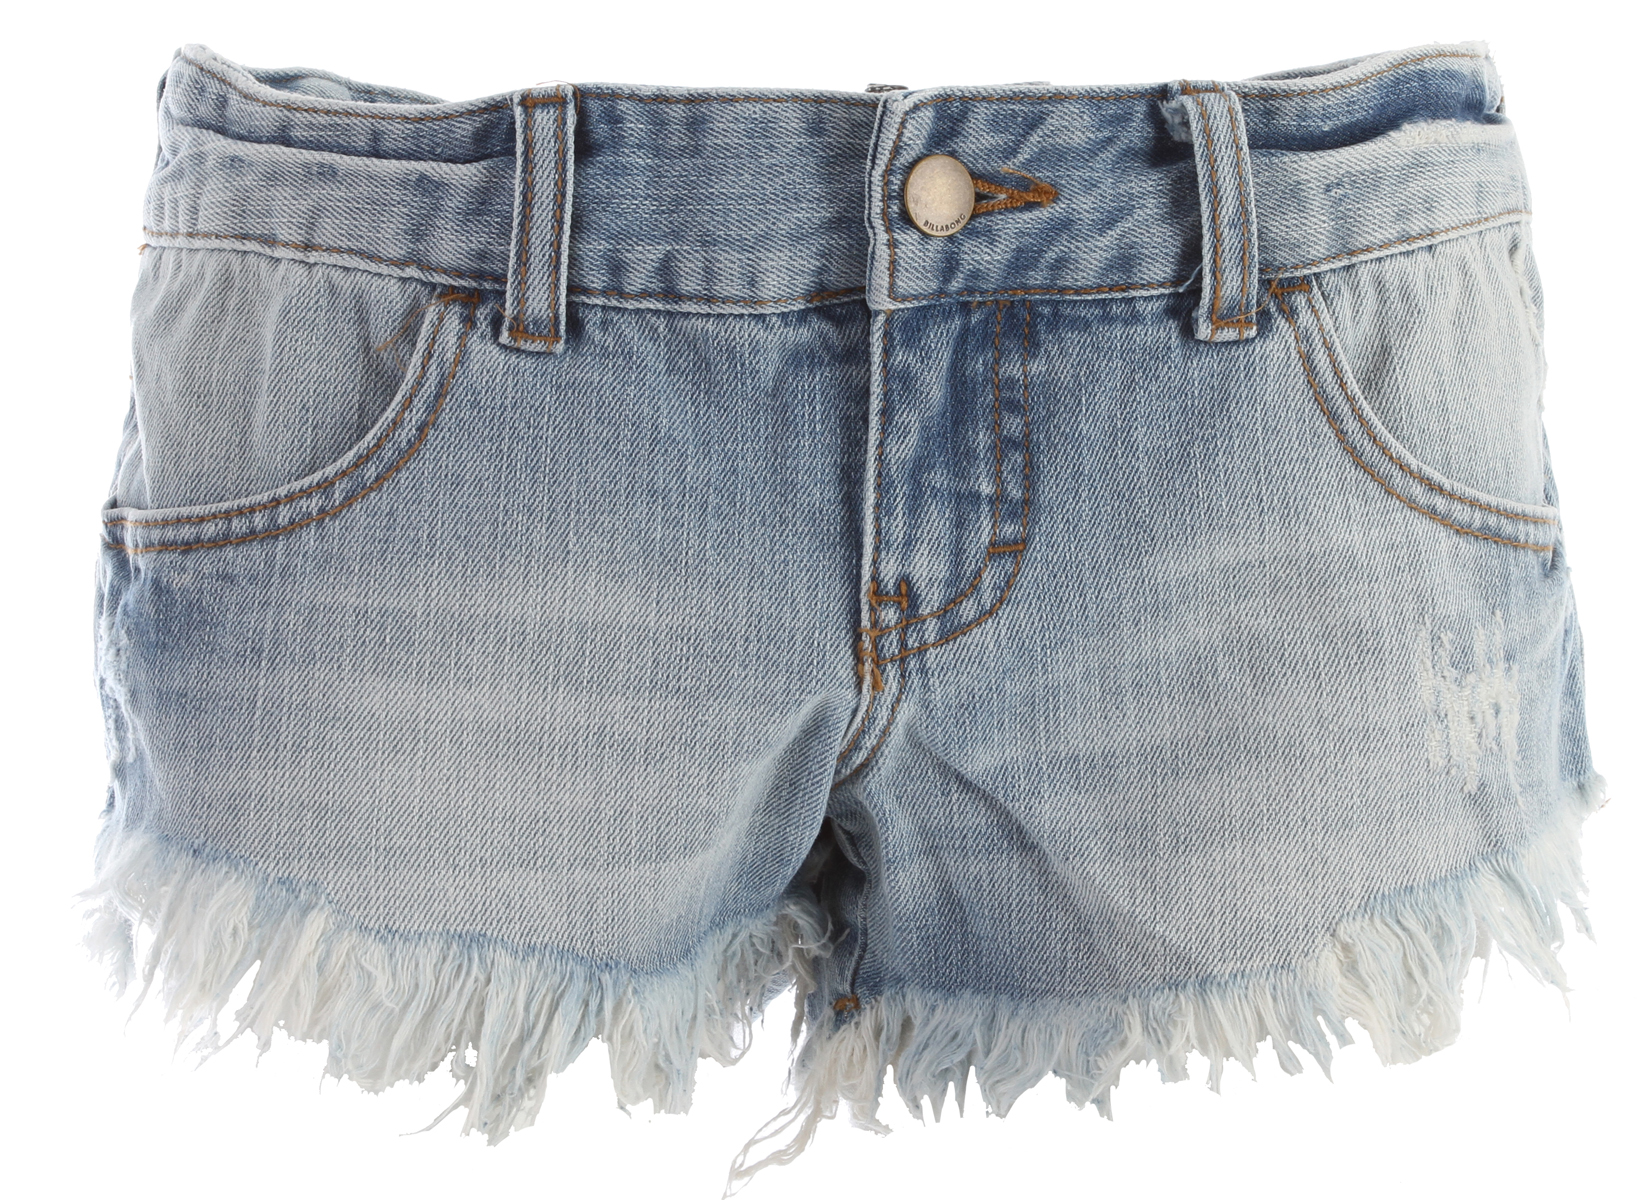 Surf Key Features of the Billabong Laneway Denim Shorts: 100% cotton 4 pocket denim cut off is the perfect staple for your wardrobe Scooped front leg with slightly longer fringe Slight tacking at waistband and back pockets Placement tribal print adds unique style - $49.50